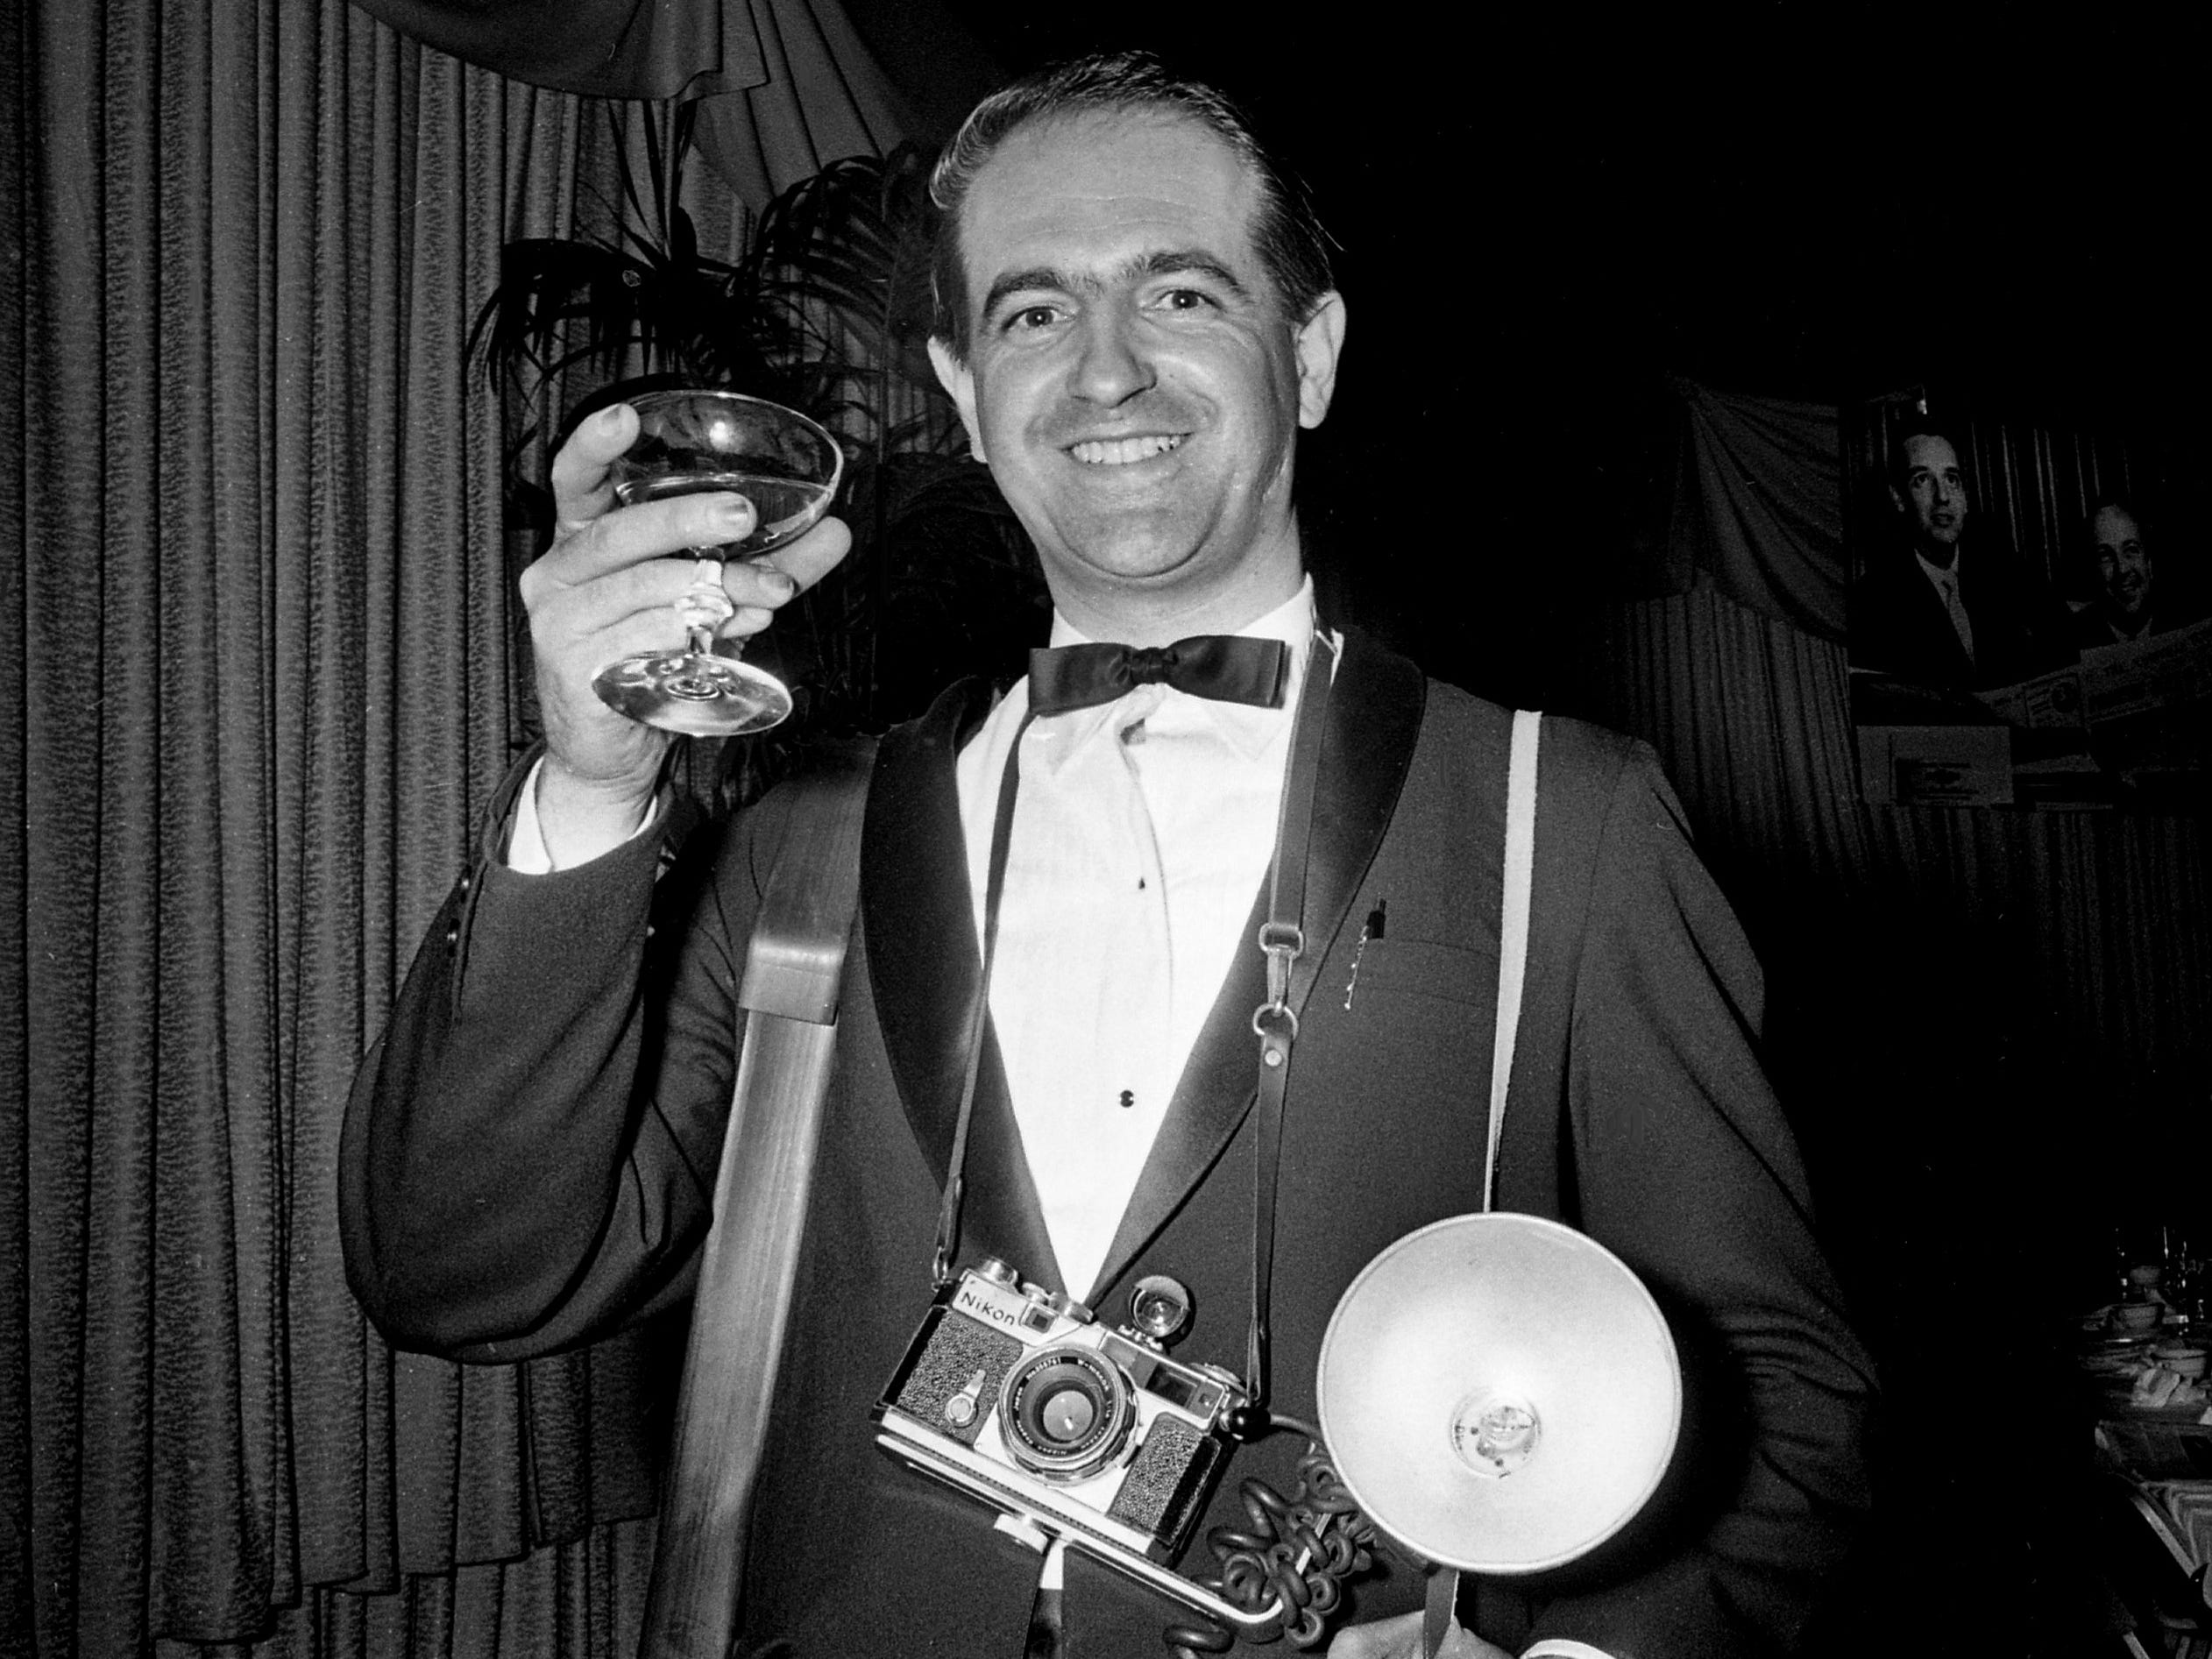 Tennessean staff photographer Frank Epson gives a toast at the end of the tribute dinner honoring the 30th anniversary of the Silliman Evans family as publishers of The Tennessean on April 6, 1967, at Municipal Auditorium.